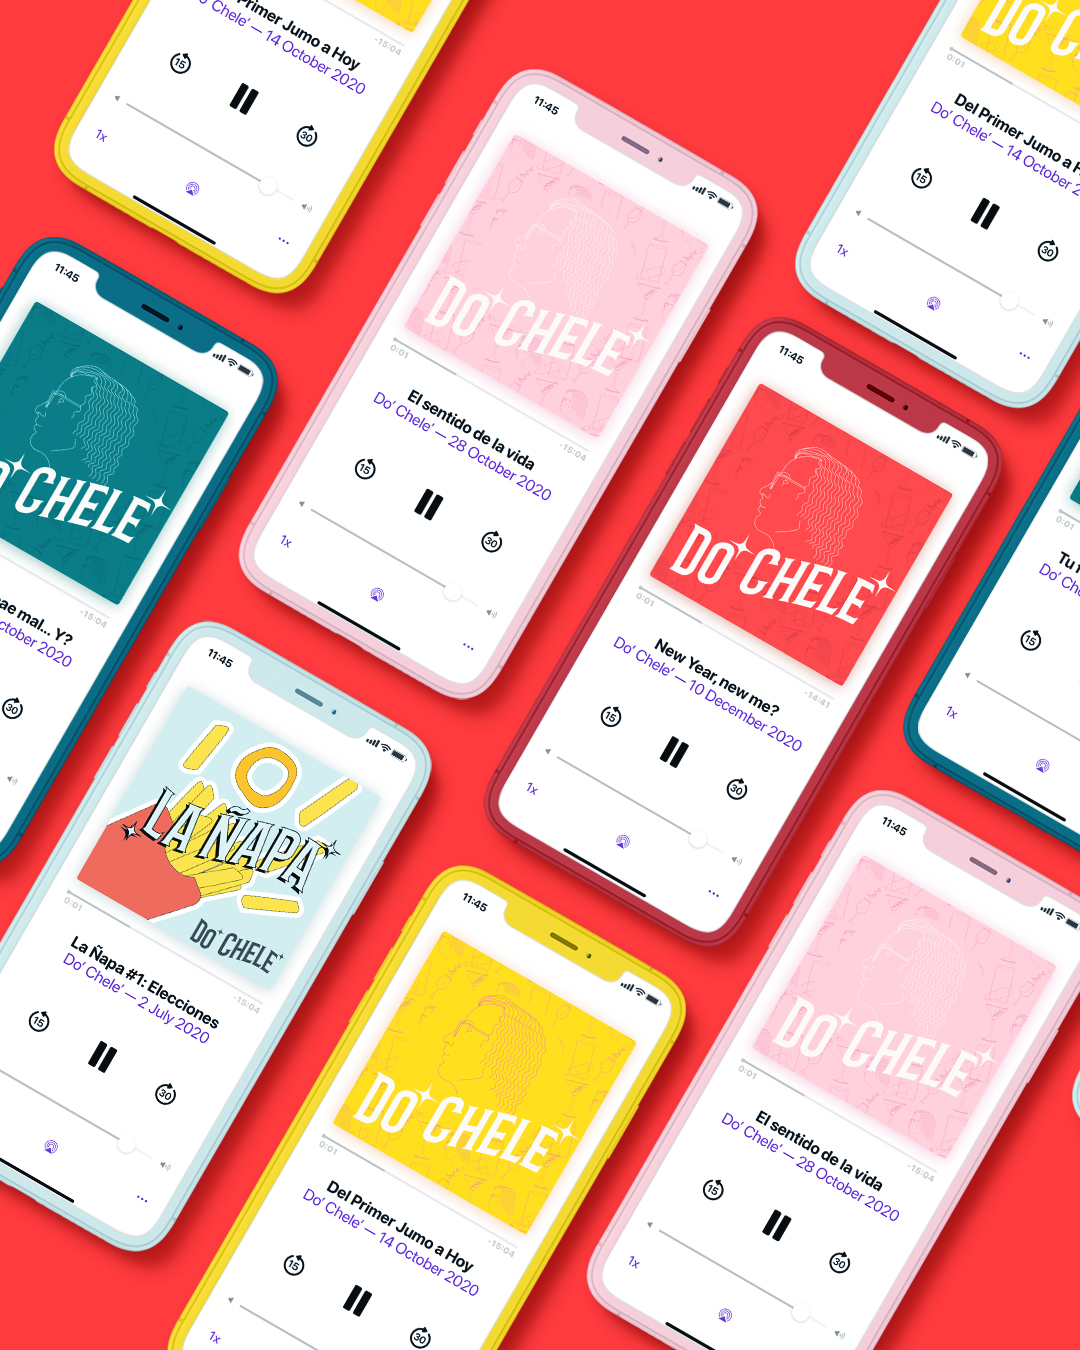 Agency Design Mophing Creates New Brand Identity Do' Chele' Podcast